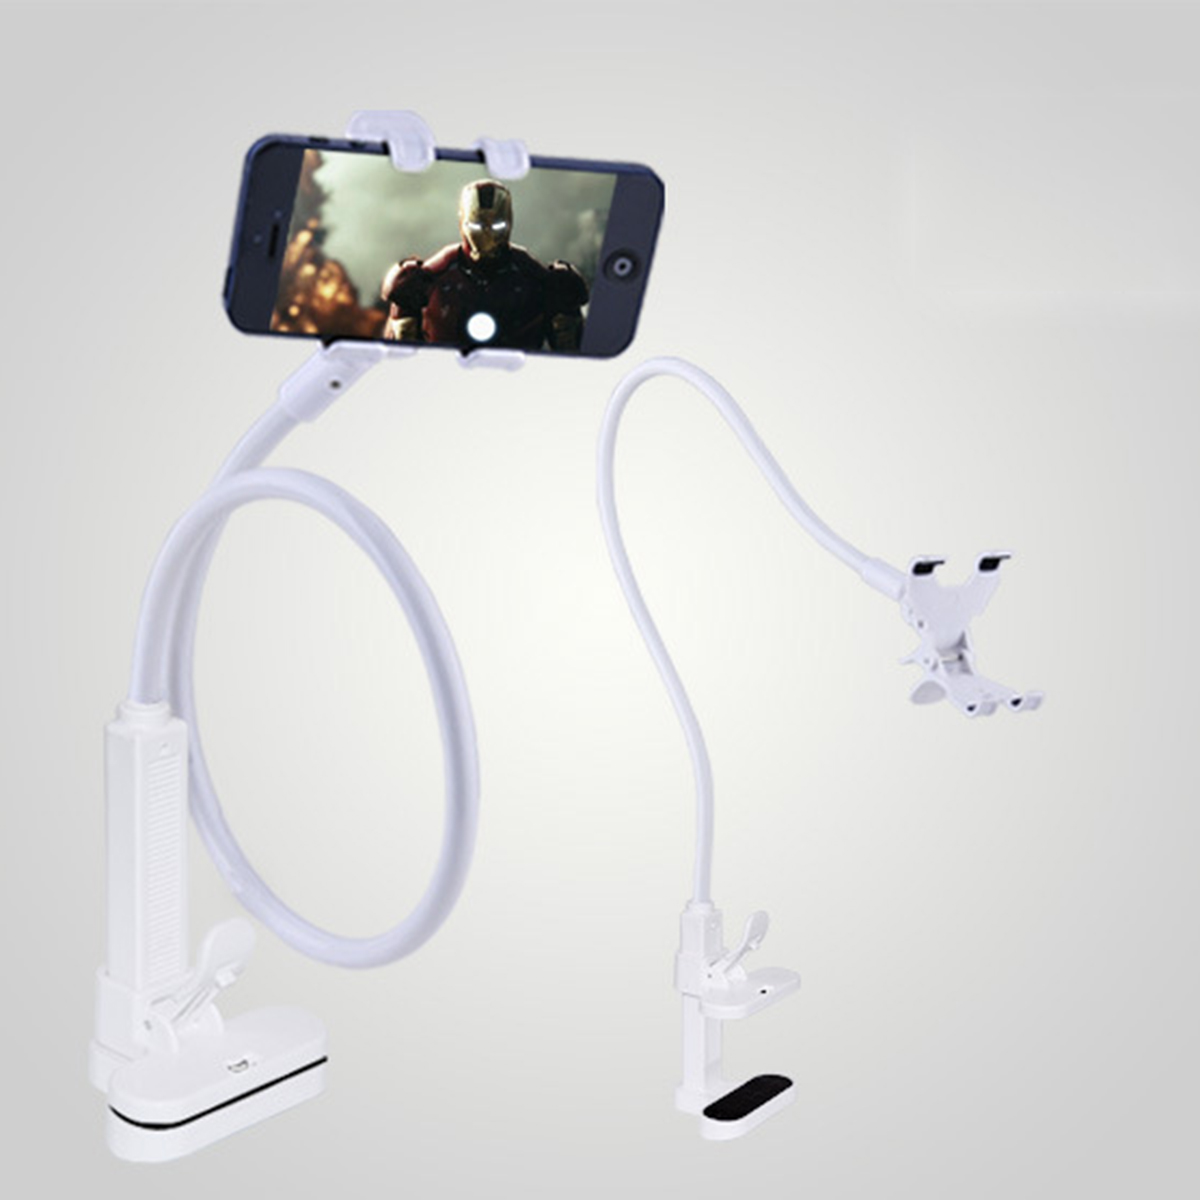 Universal Lazy Flexible Long Arms Bed Desk Mobile Phone Holder Stand Bracket for Samsung Xiaomi